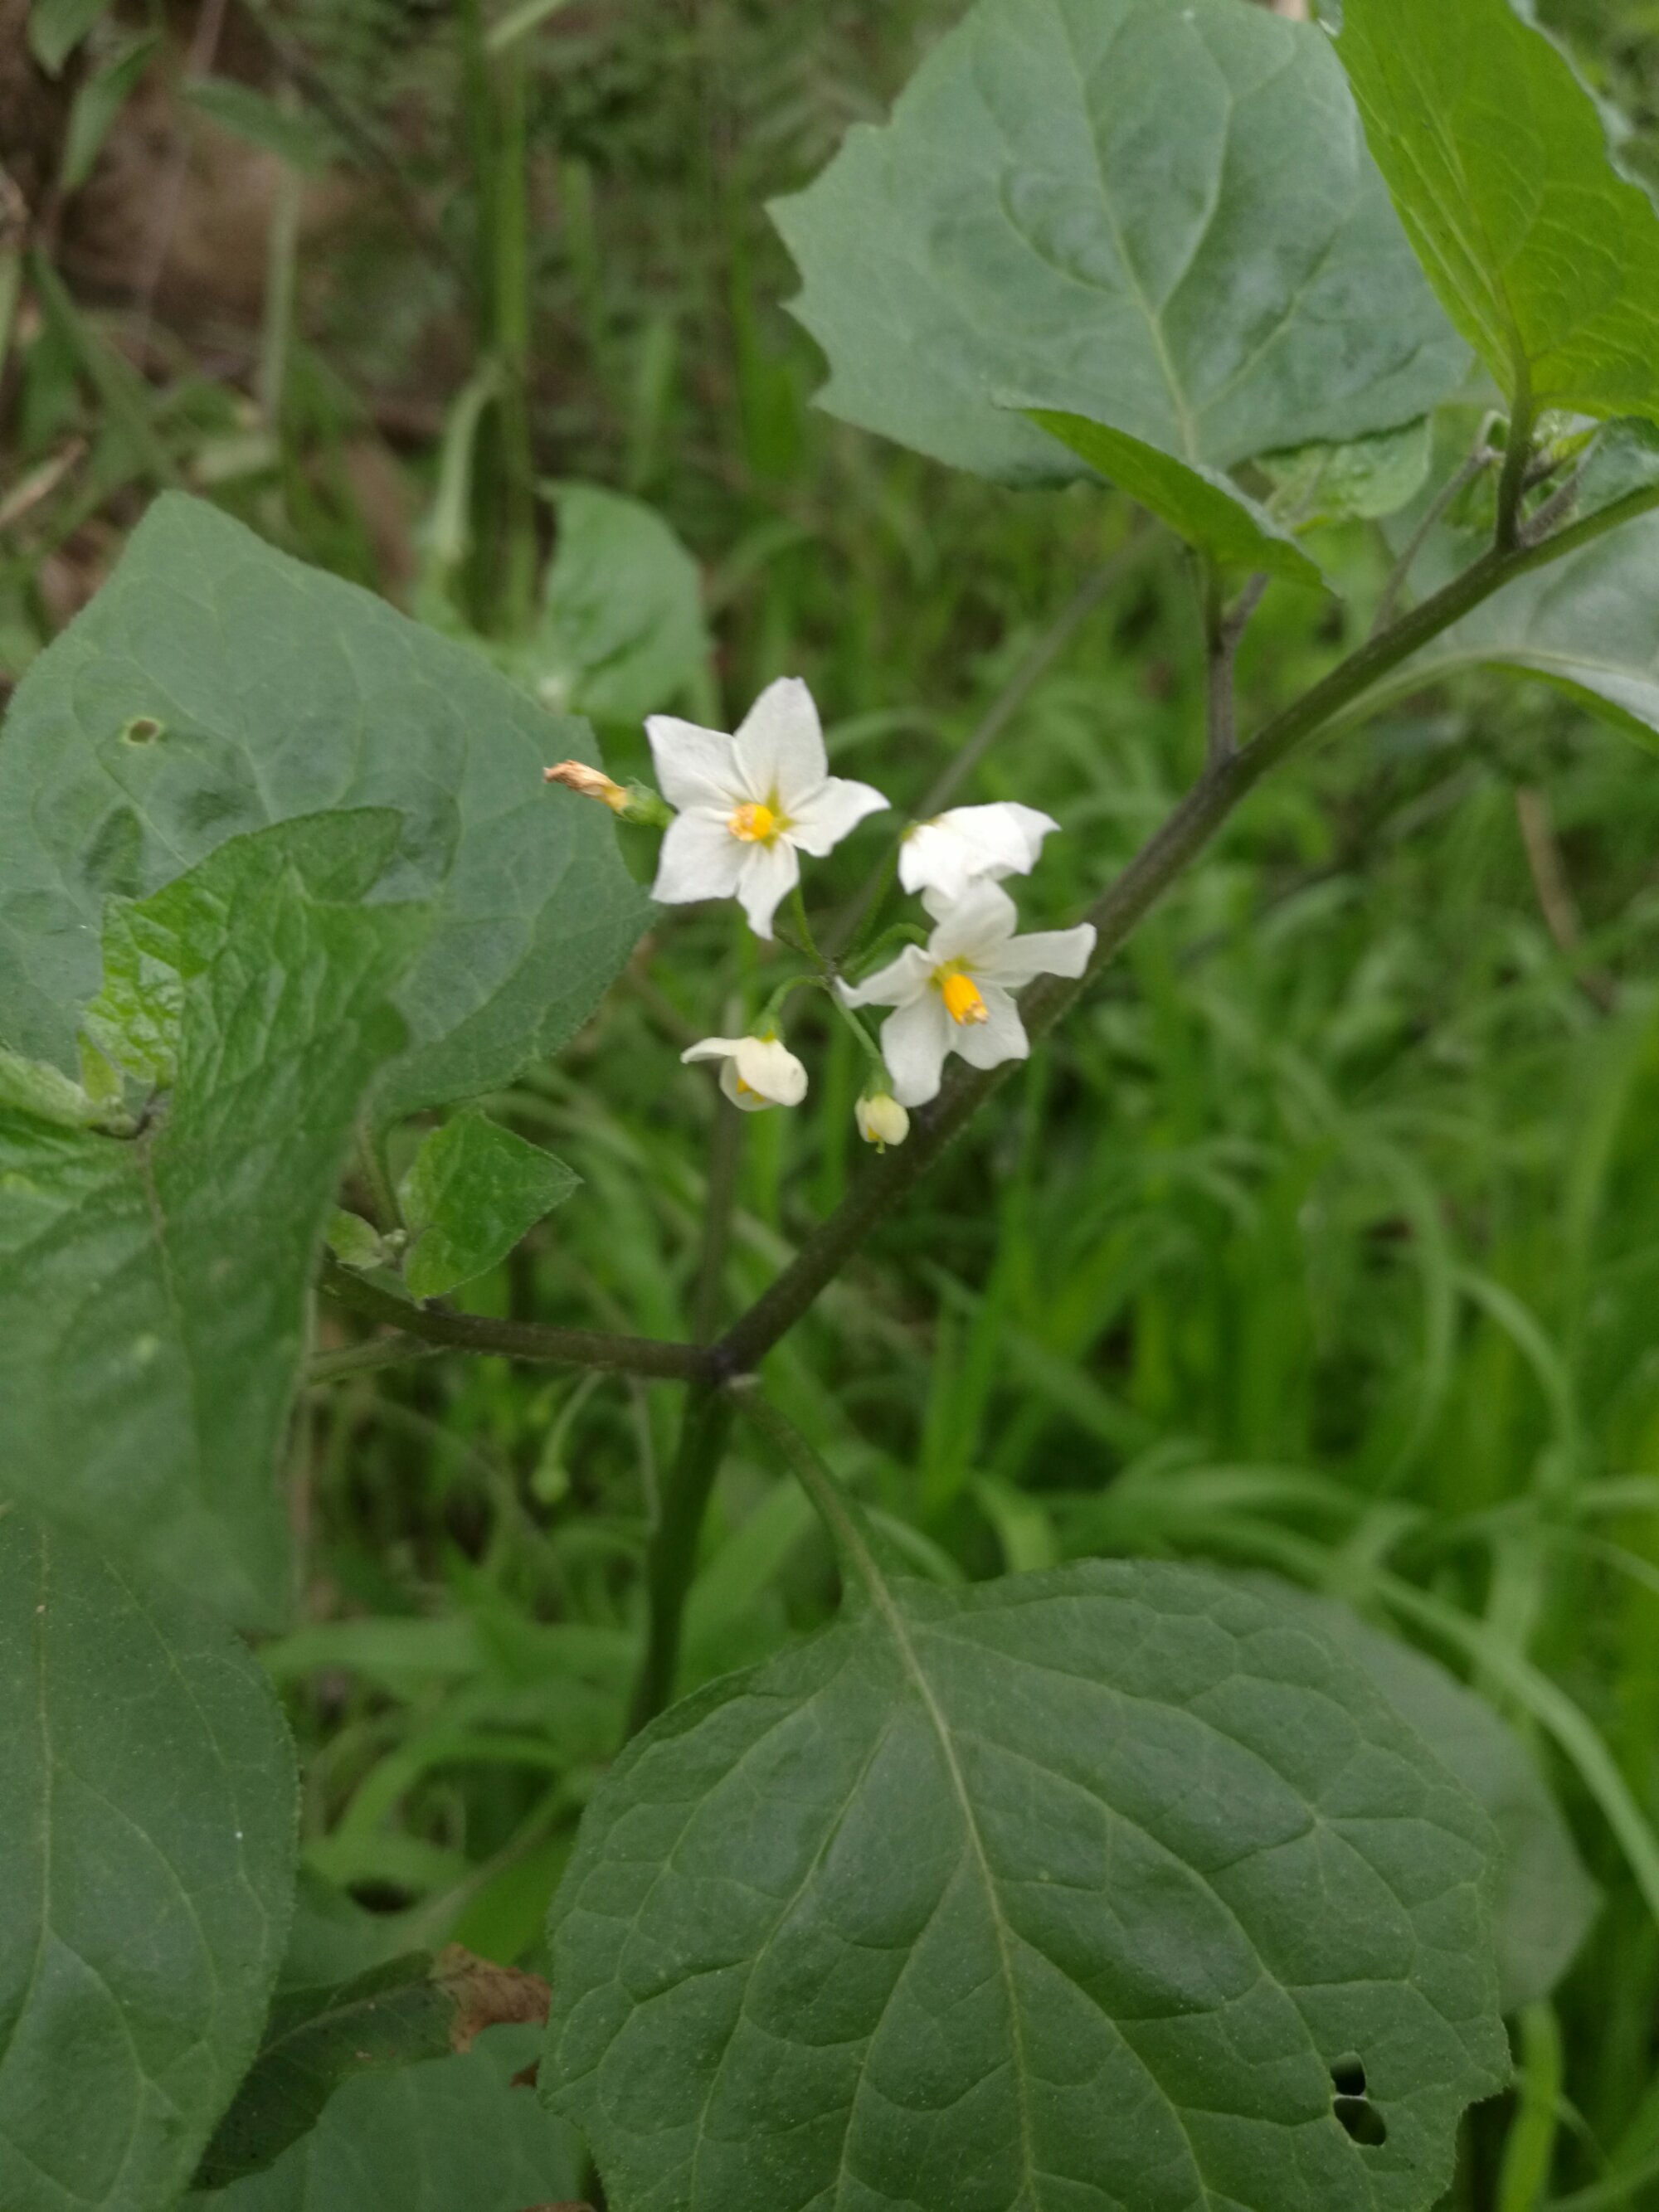 Small white flowers are a characteristic feature of BlackBerry Nightshade